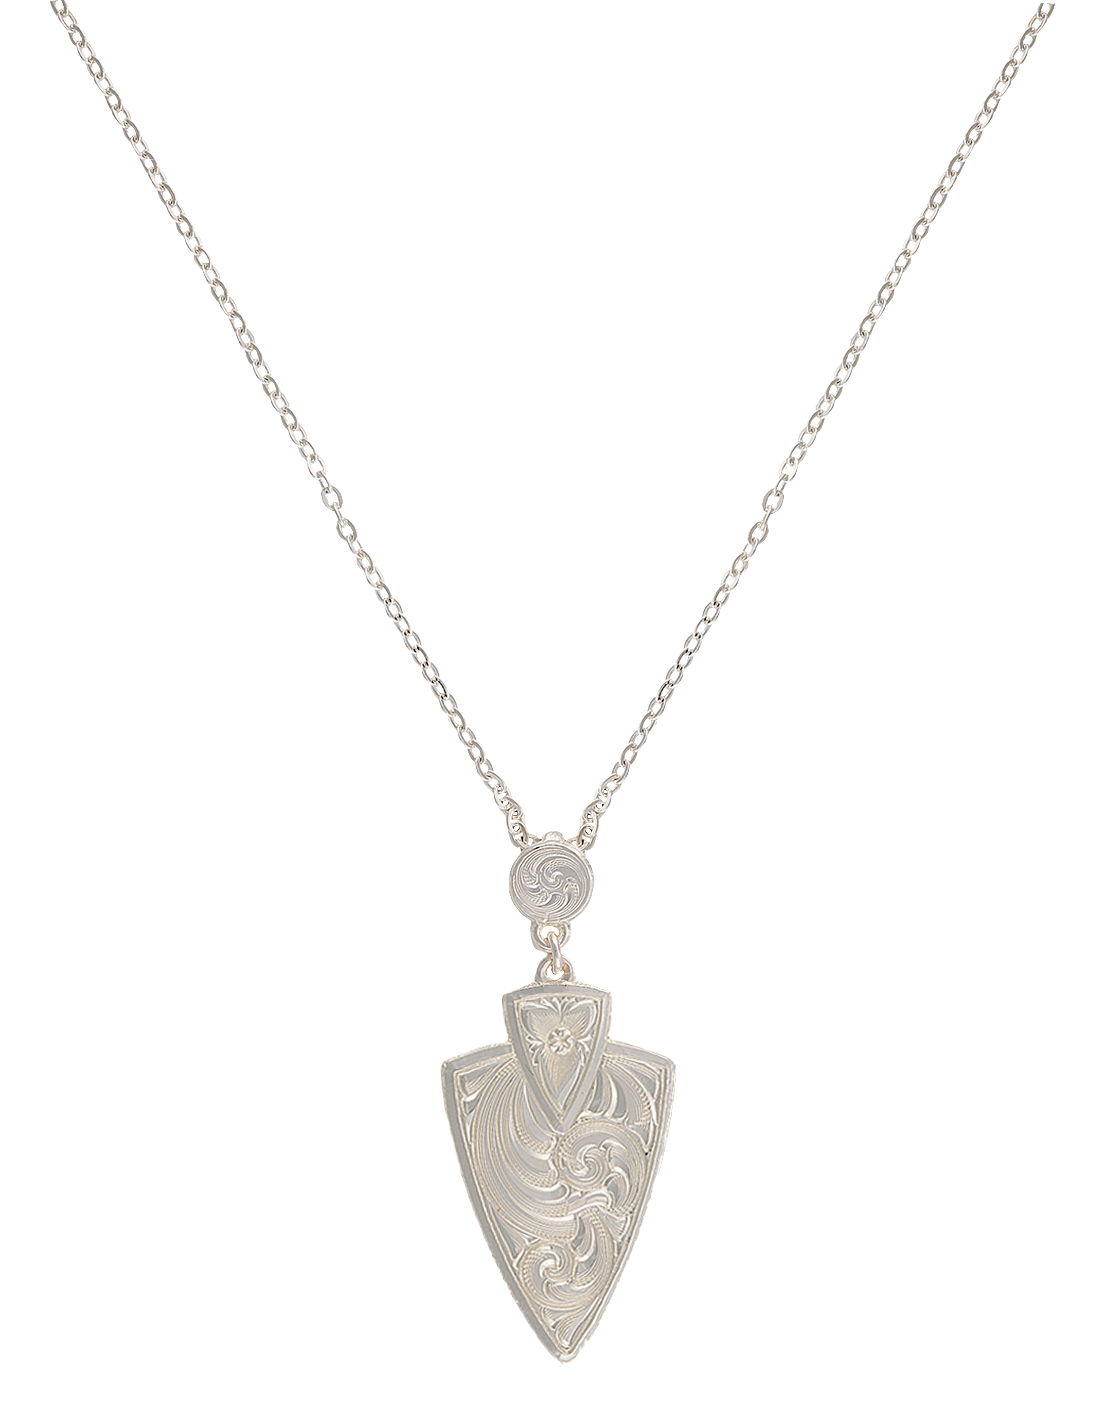 Montana Silversmiths A Keen Pursuit Arrowhead Necklace